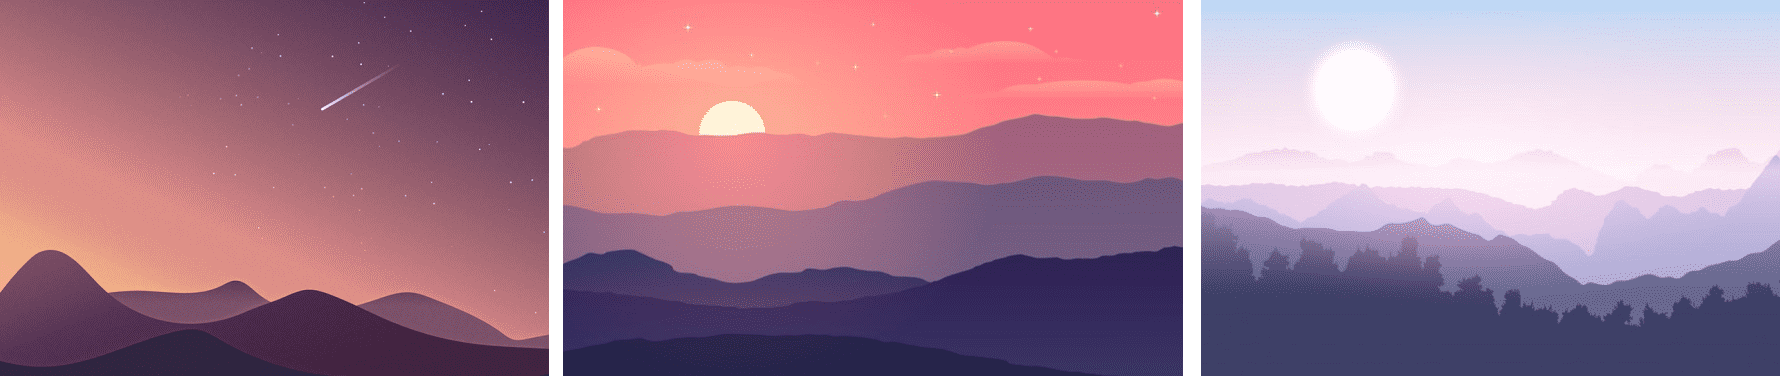 Procedurally Generated Svg Landscapes Kevinverse